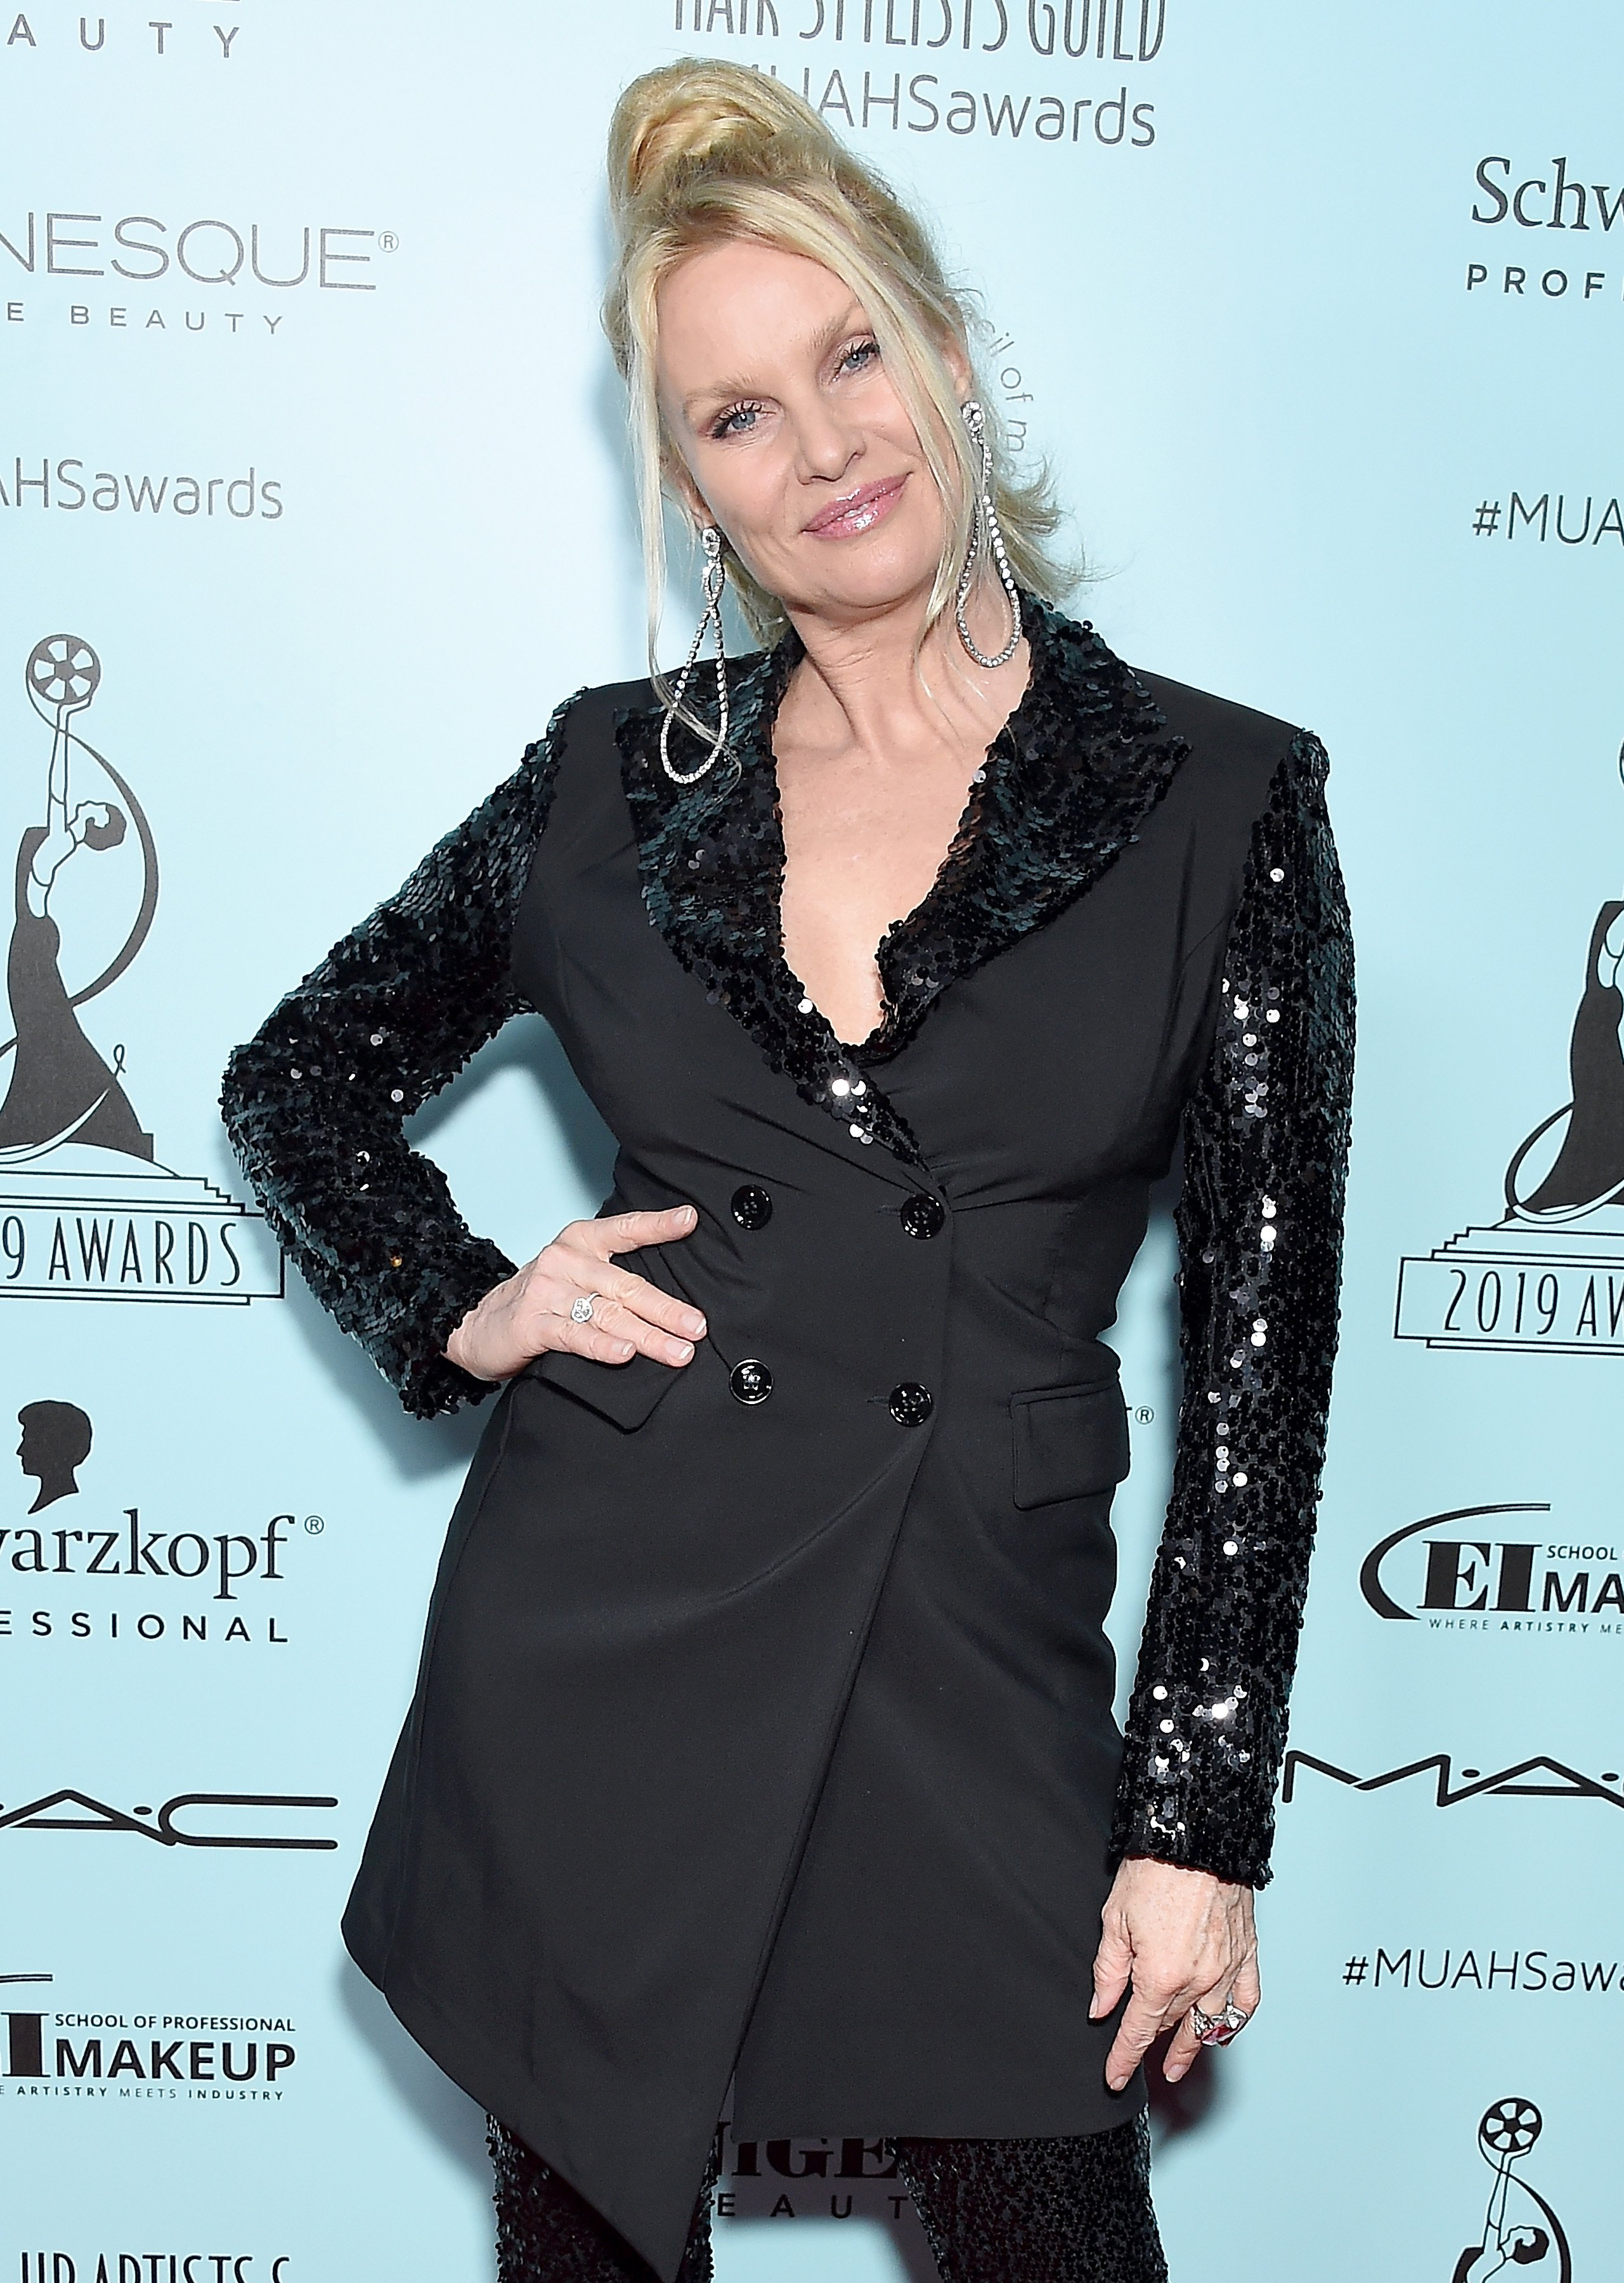 Nicollette Sheridan attends the 6th Annual Make-Up Artists & Hair Stylists Guild Awards at The Novo by Microsoft on February 16, 2019, in Los Angeles, California. | Source: Getty Images.